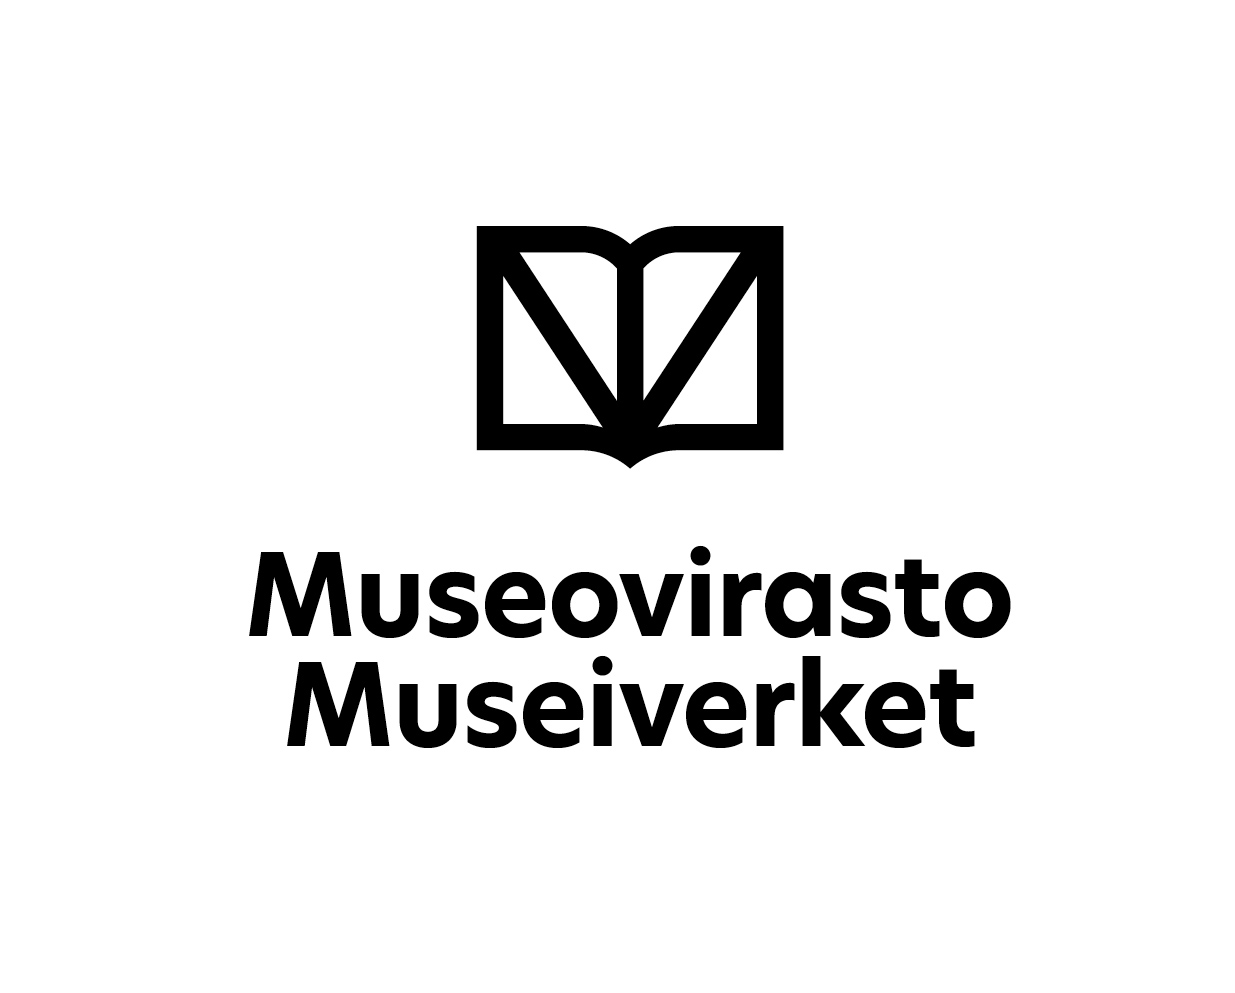 Finnish Heritage Agency